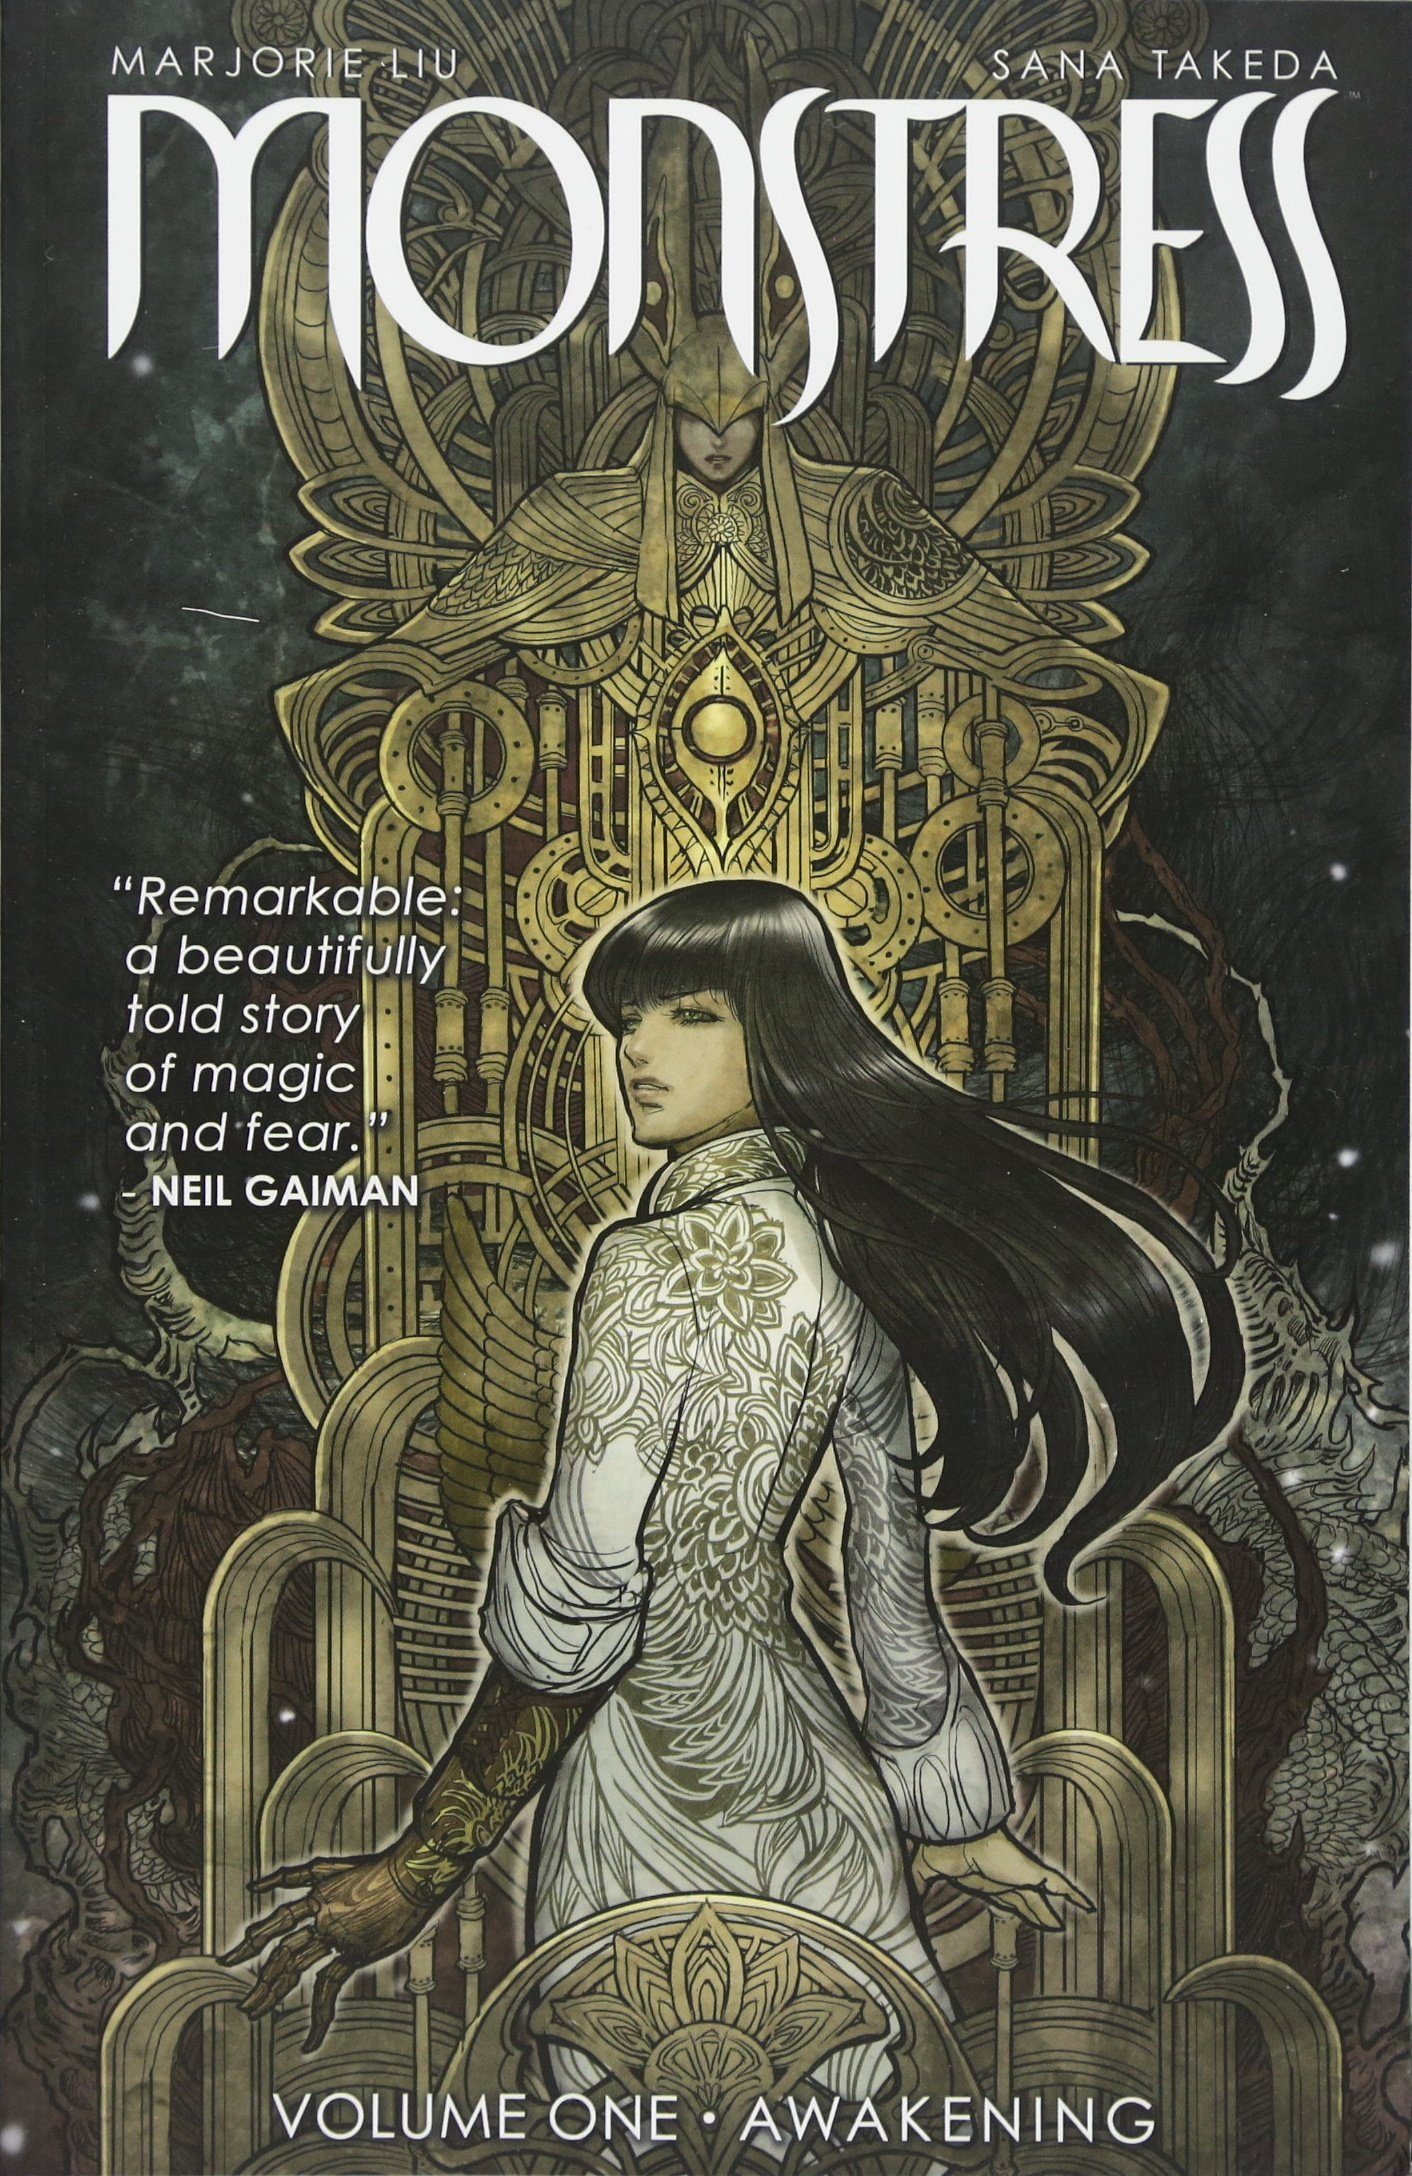 monstress vol 1 by Marjorie Liu and illustrated by Sana Takeda book cover